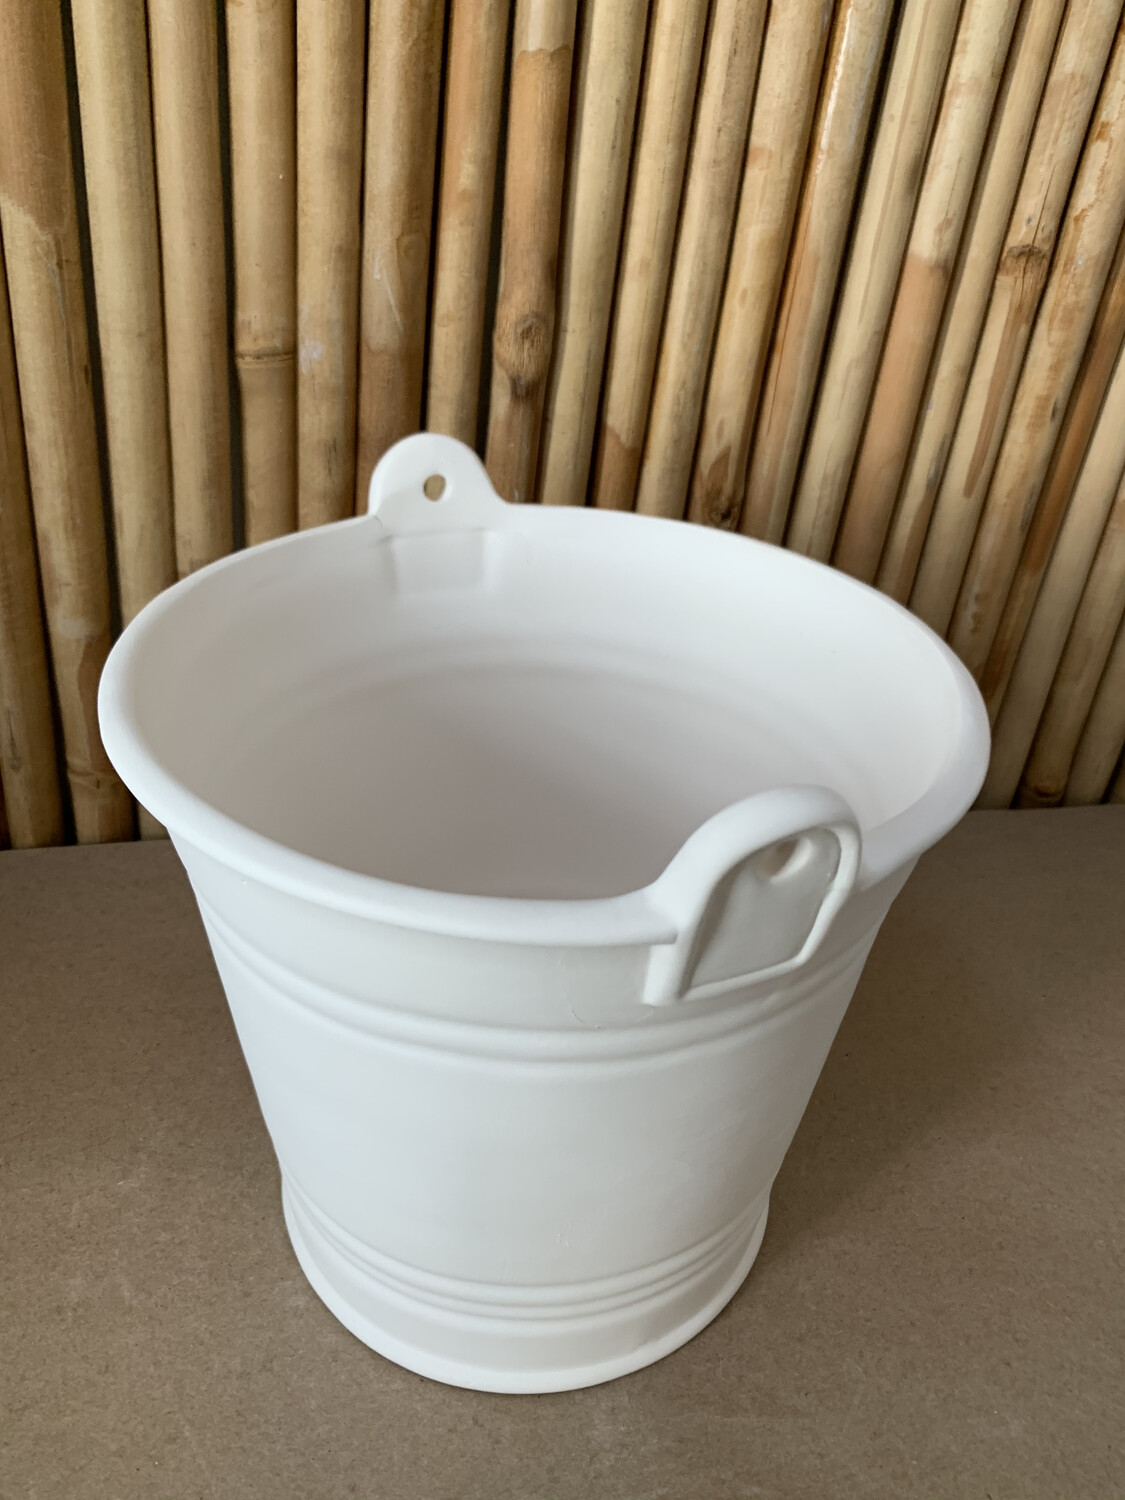 Paint Your Own Pottery - Ceramic   Beach Pail Bucket Painting Kit